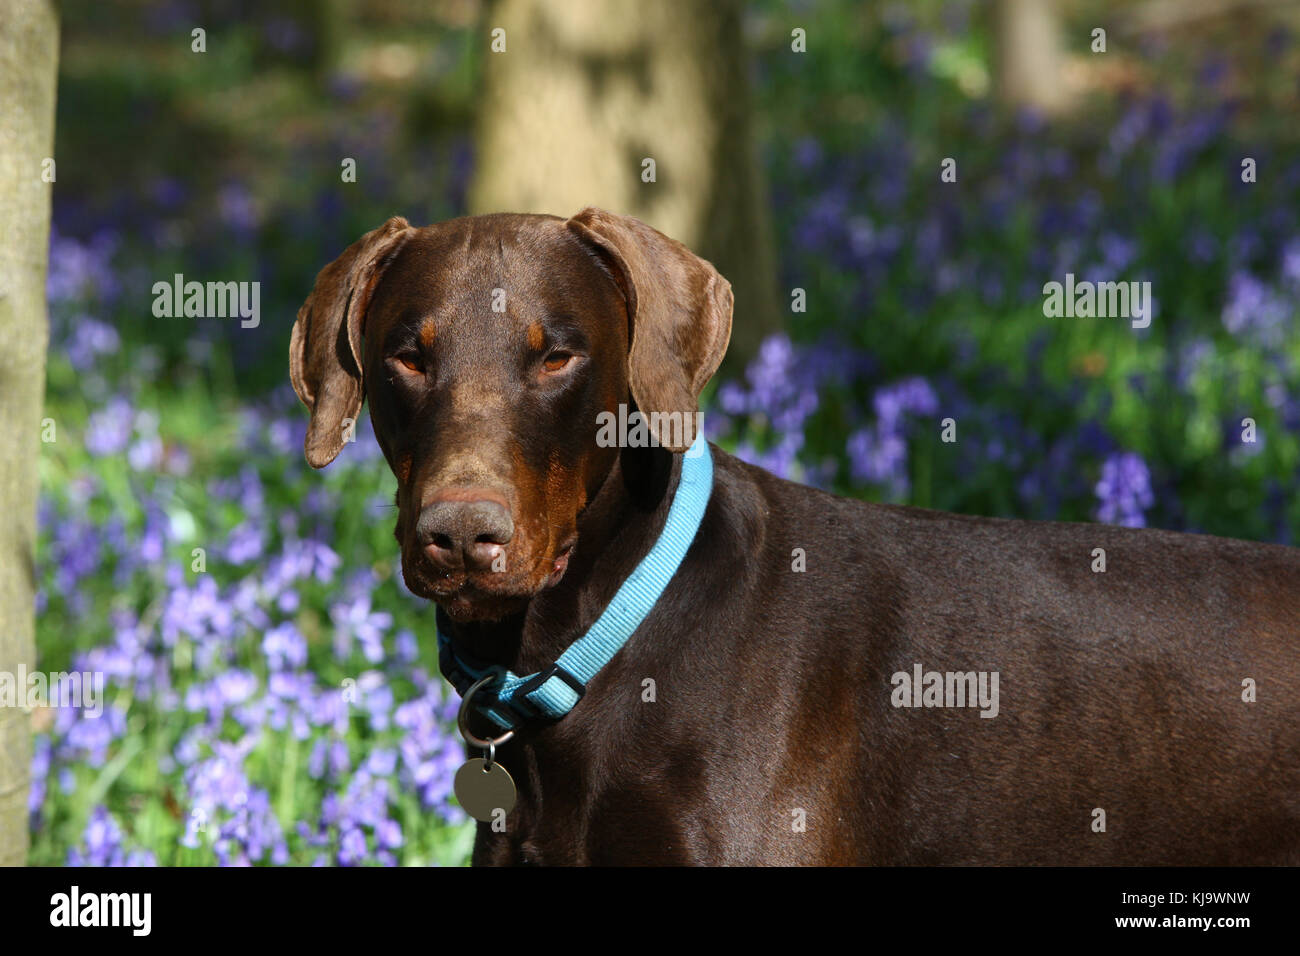 Doberman Pinscher - Stock Image